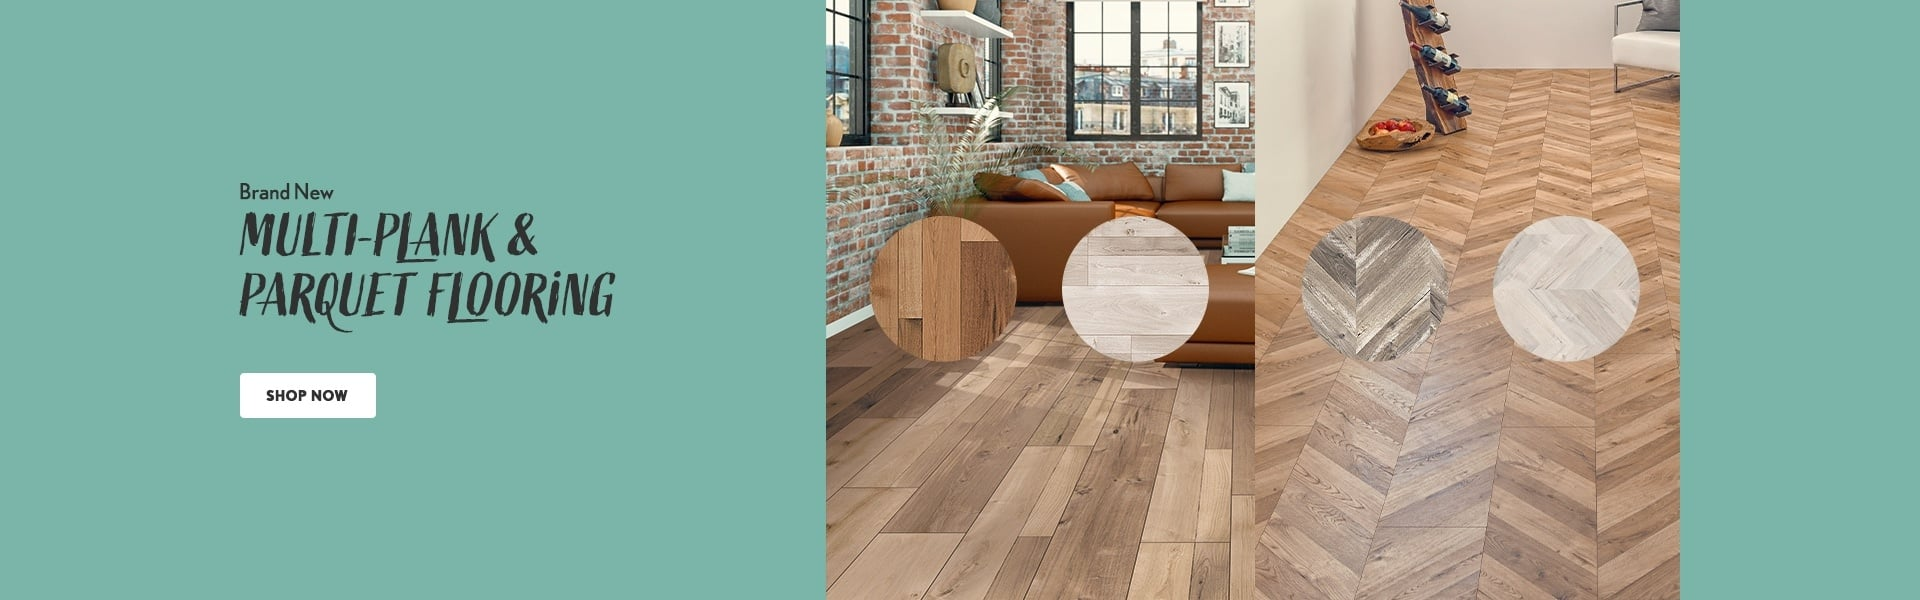 New Multi-plank and Parquet Flooring range